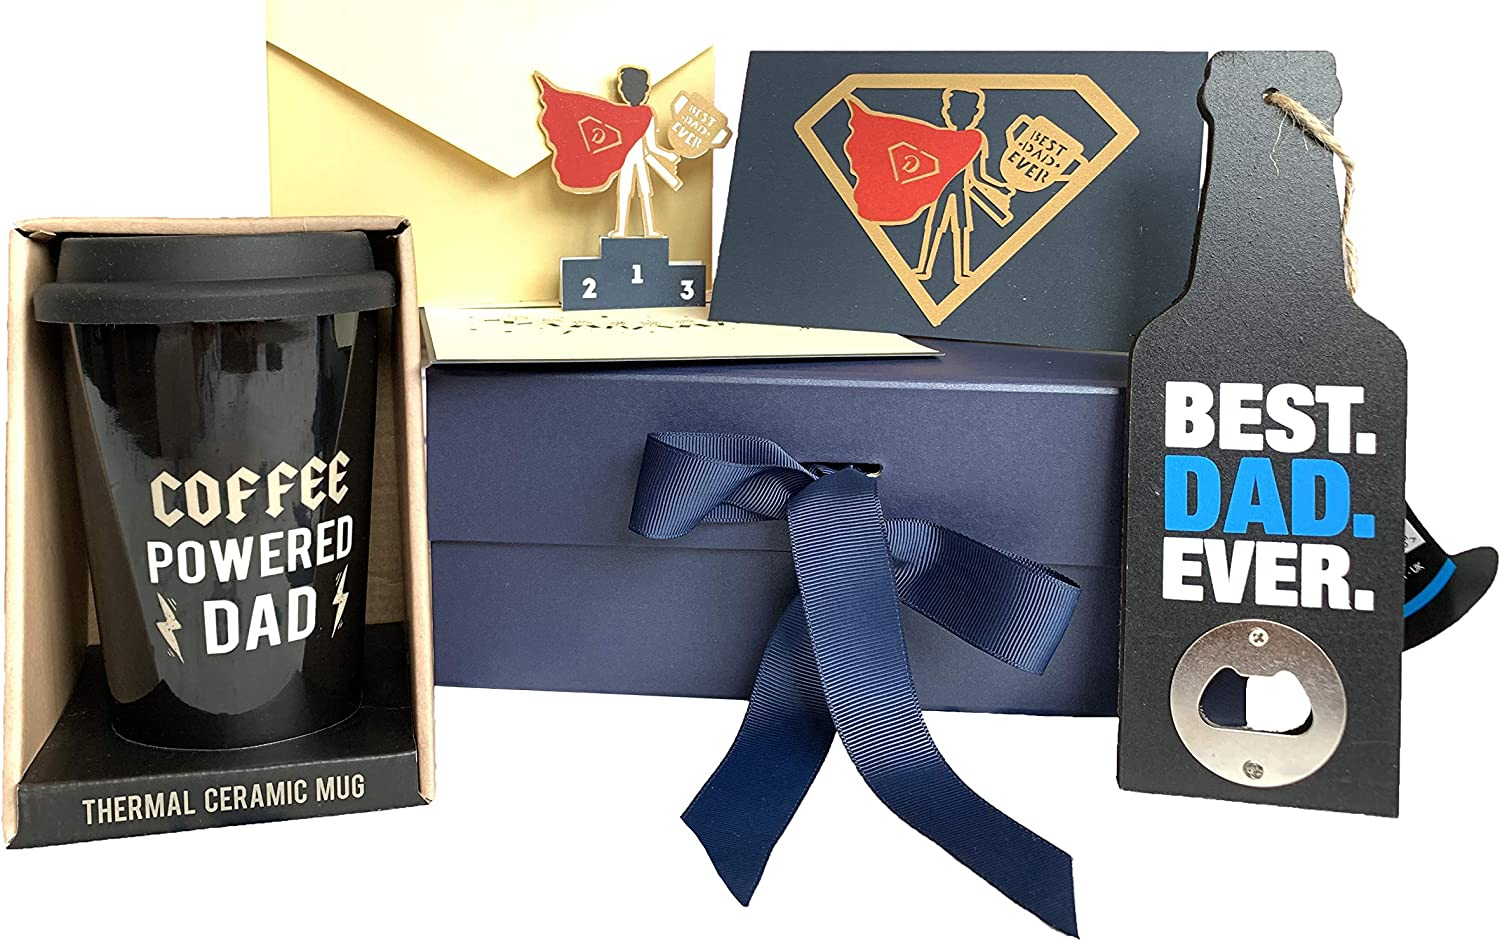 Special Unique Gift Box Ideas For Him Father Dad Daddy Men Birthday Amazing Gifts For The Best Dad Men At Home Coffee Powered Dad Travel Cup Beer Bottle Opener 3d Card Superhero Amazon Co Uk Kitchen